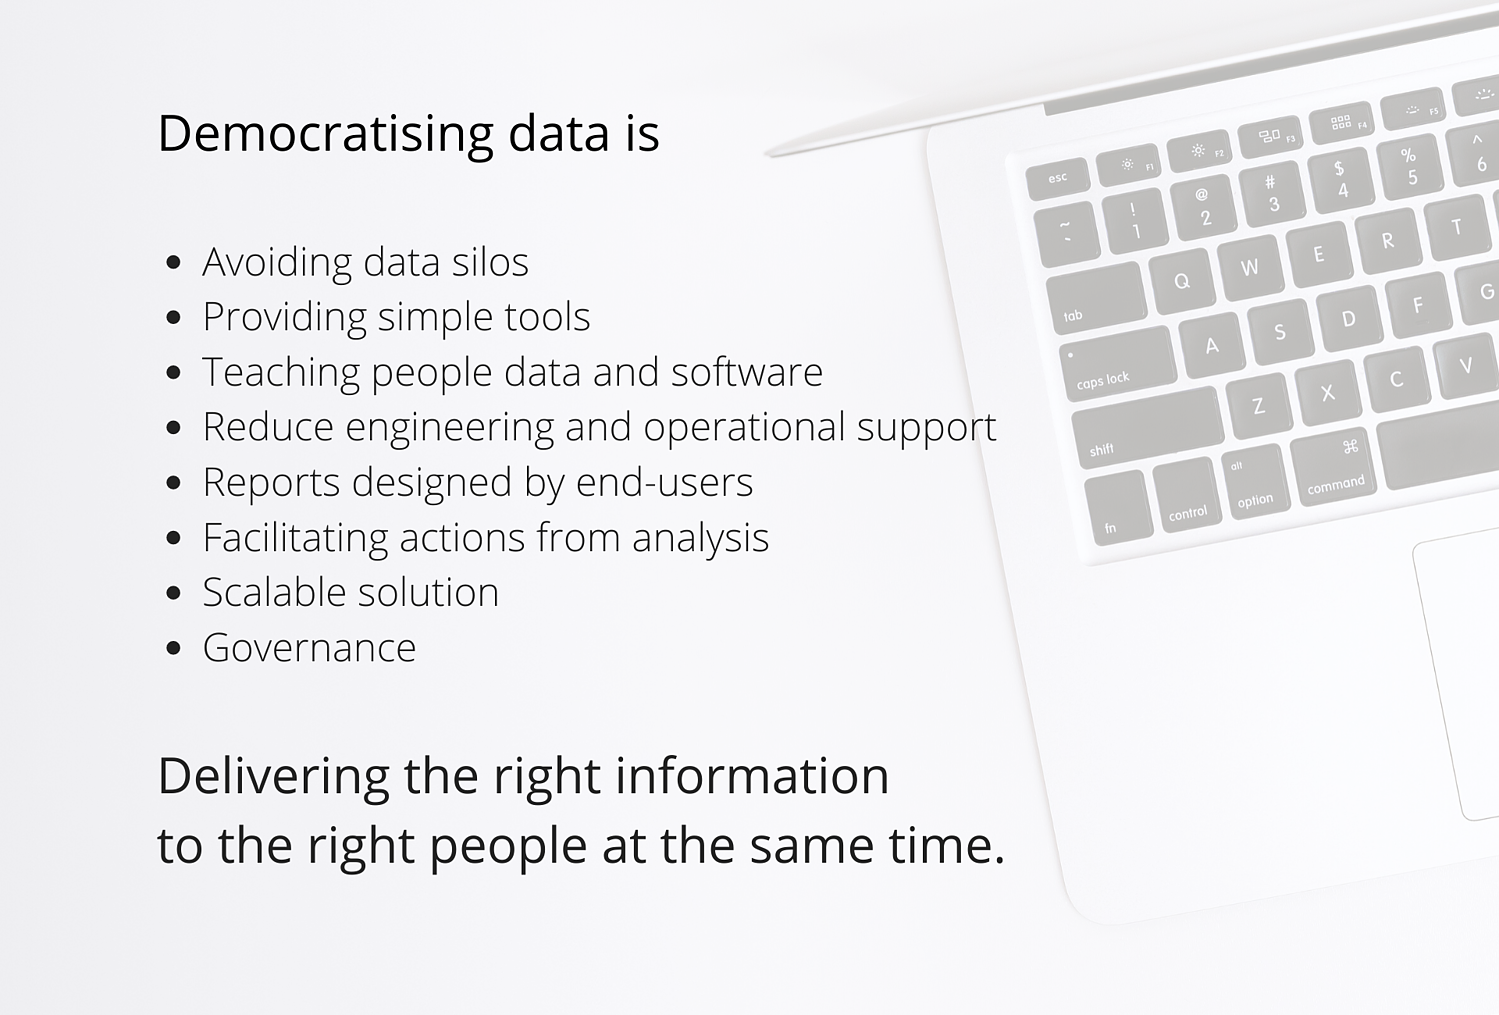 Self service analytics/ Democratising data